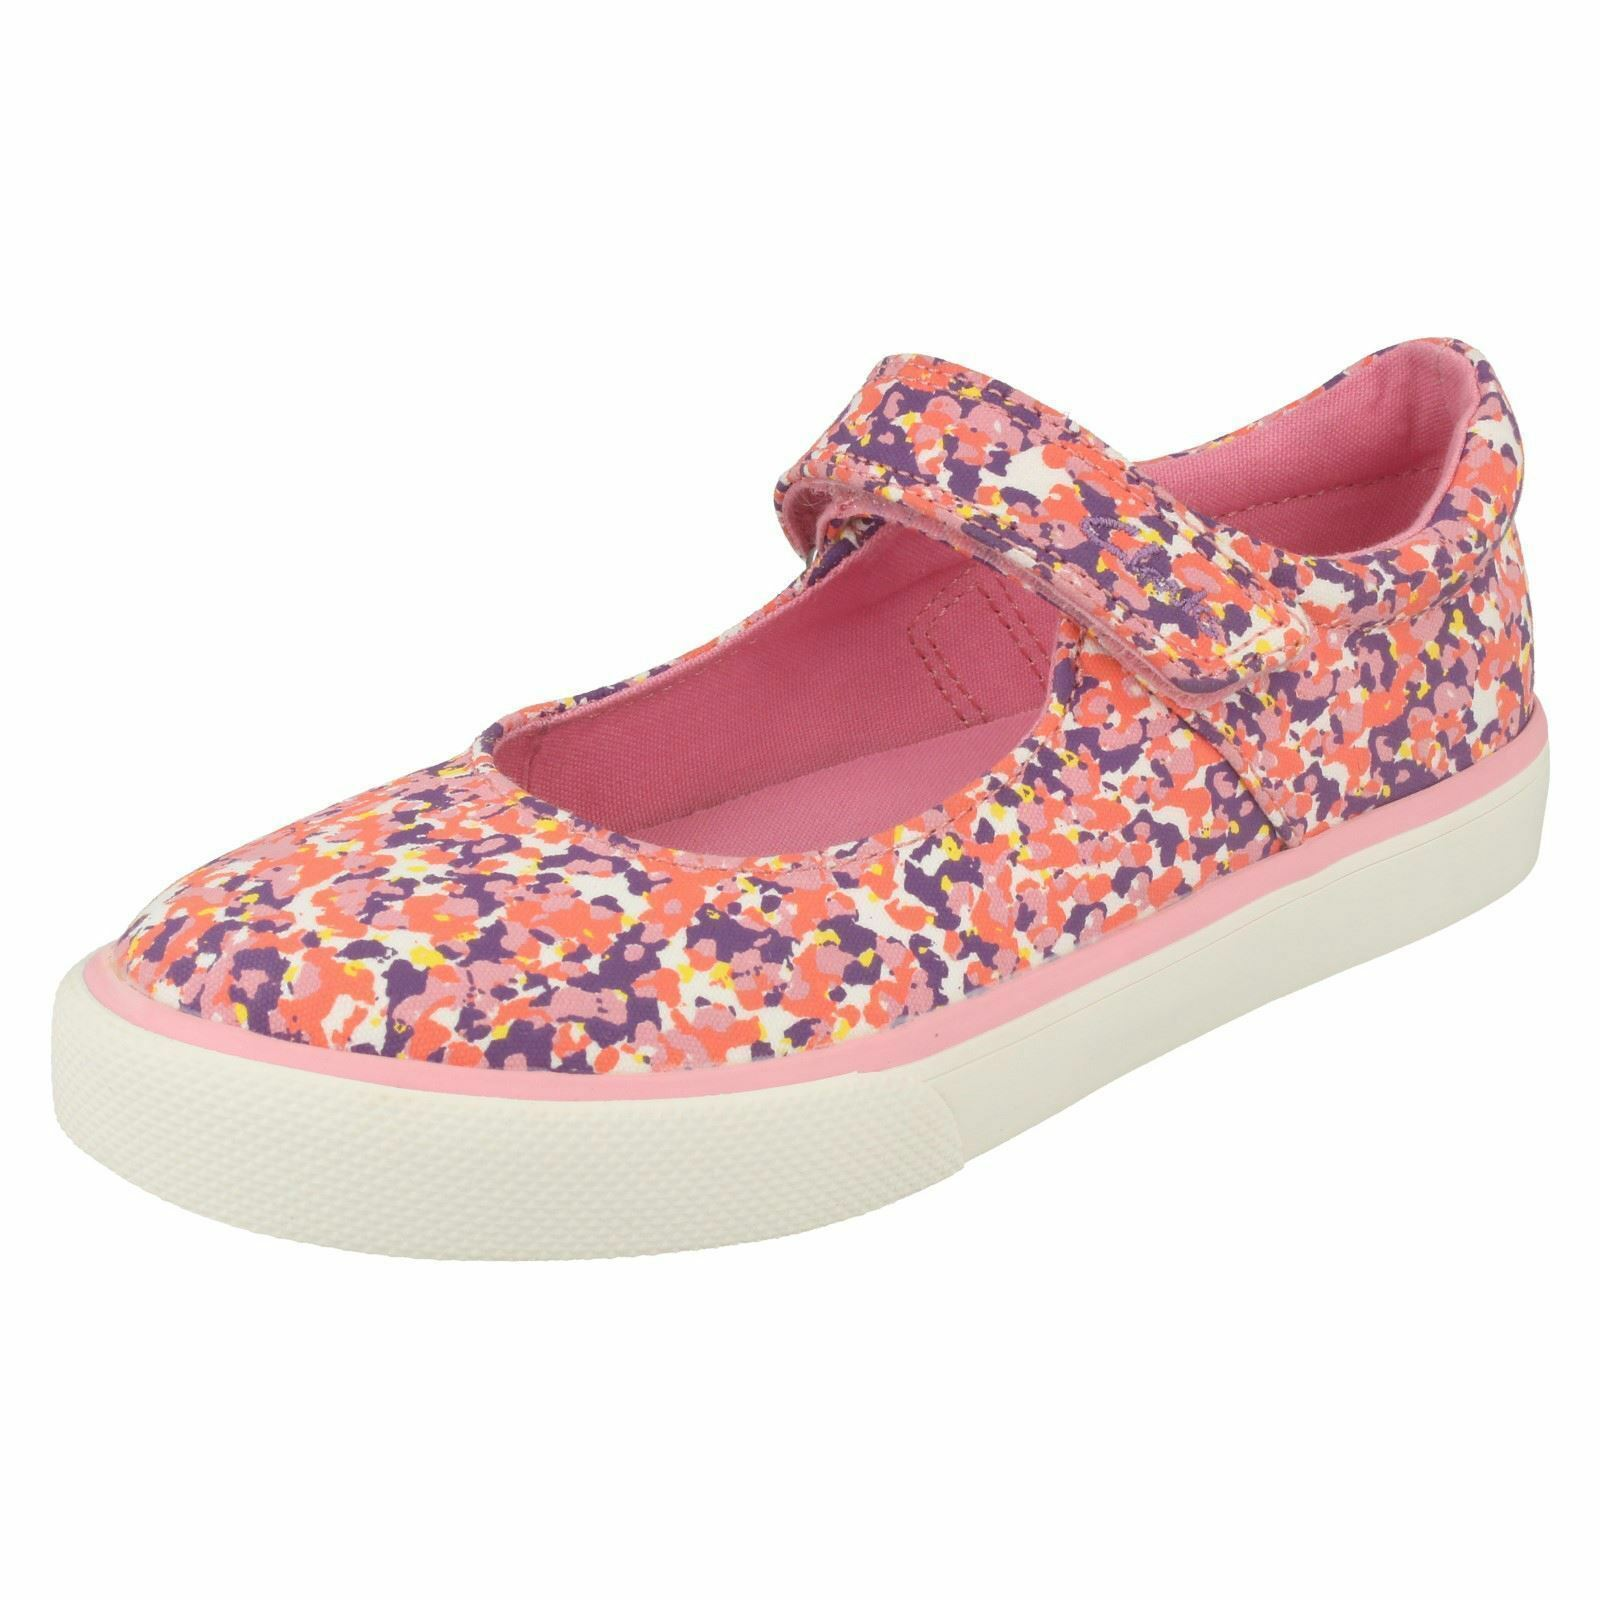 Where To Buy Clarks Brillprize Inf Girls LowTop Sneakersa